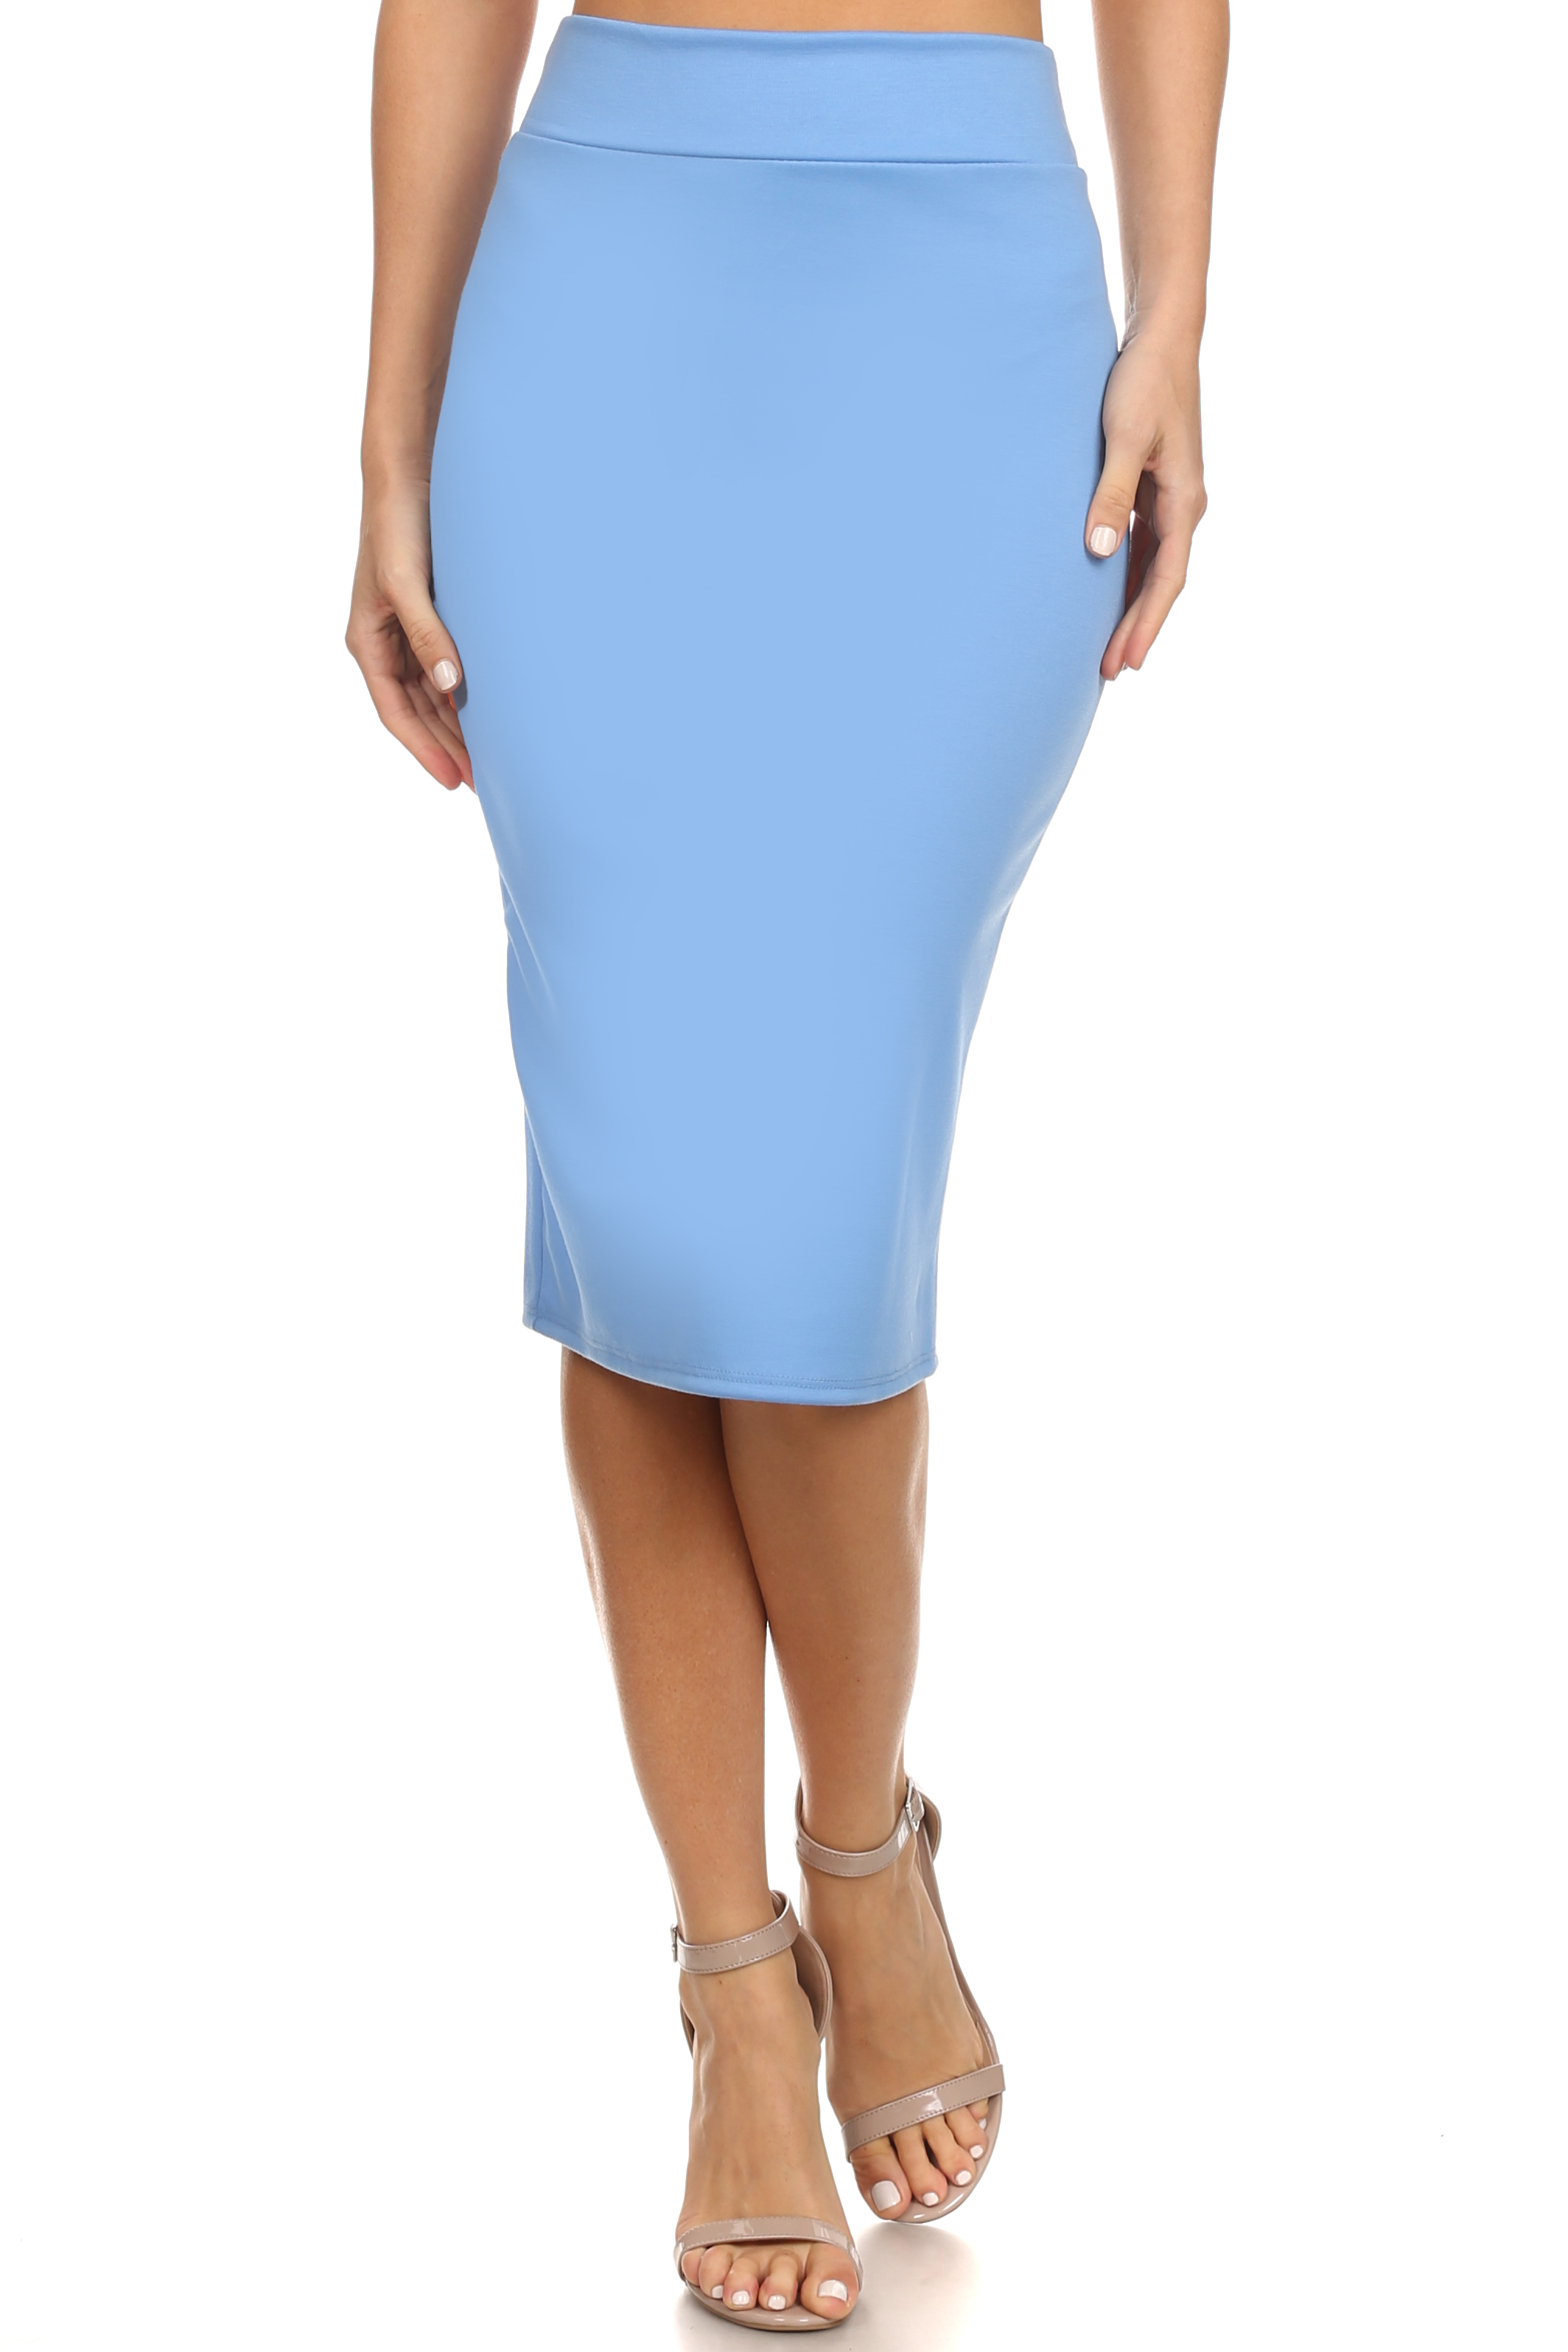 reg and plus size below knee pencil skirt